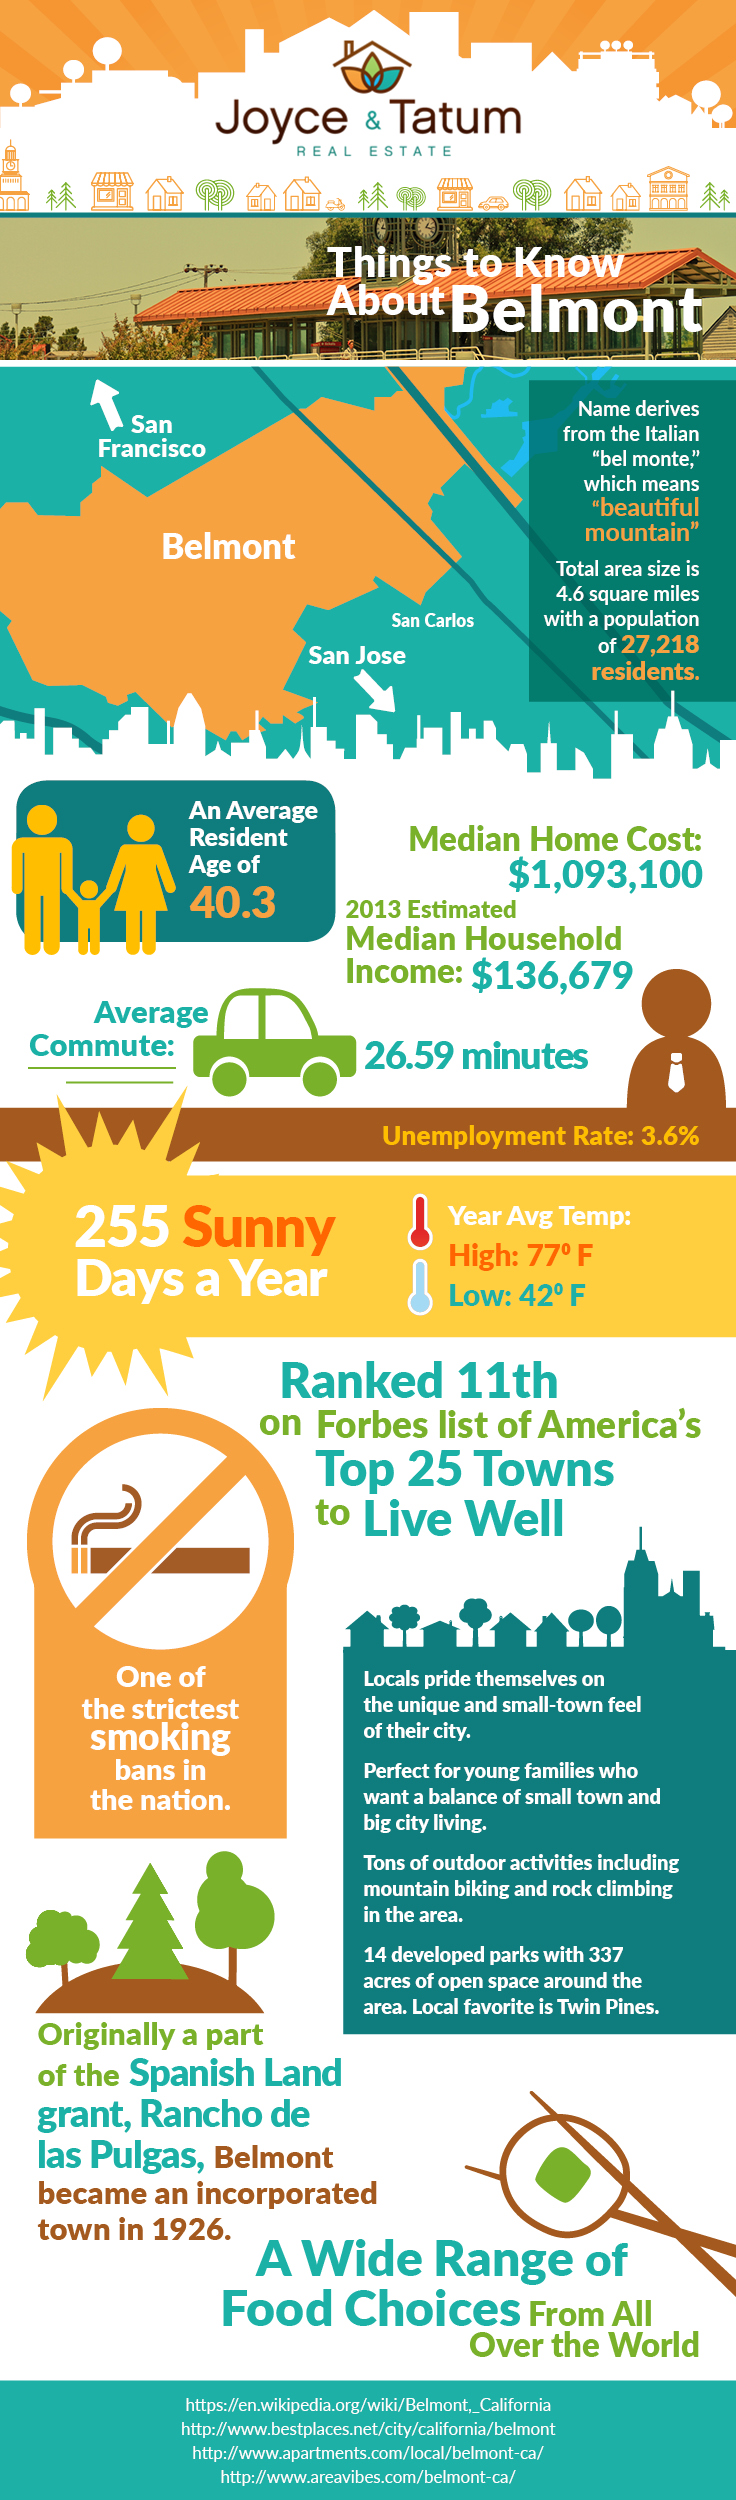 Infographic about Belmont, California for Real Estate